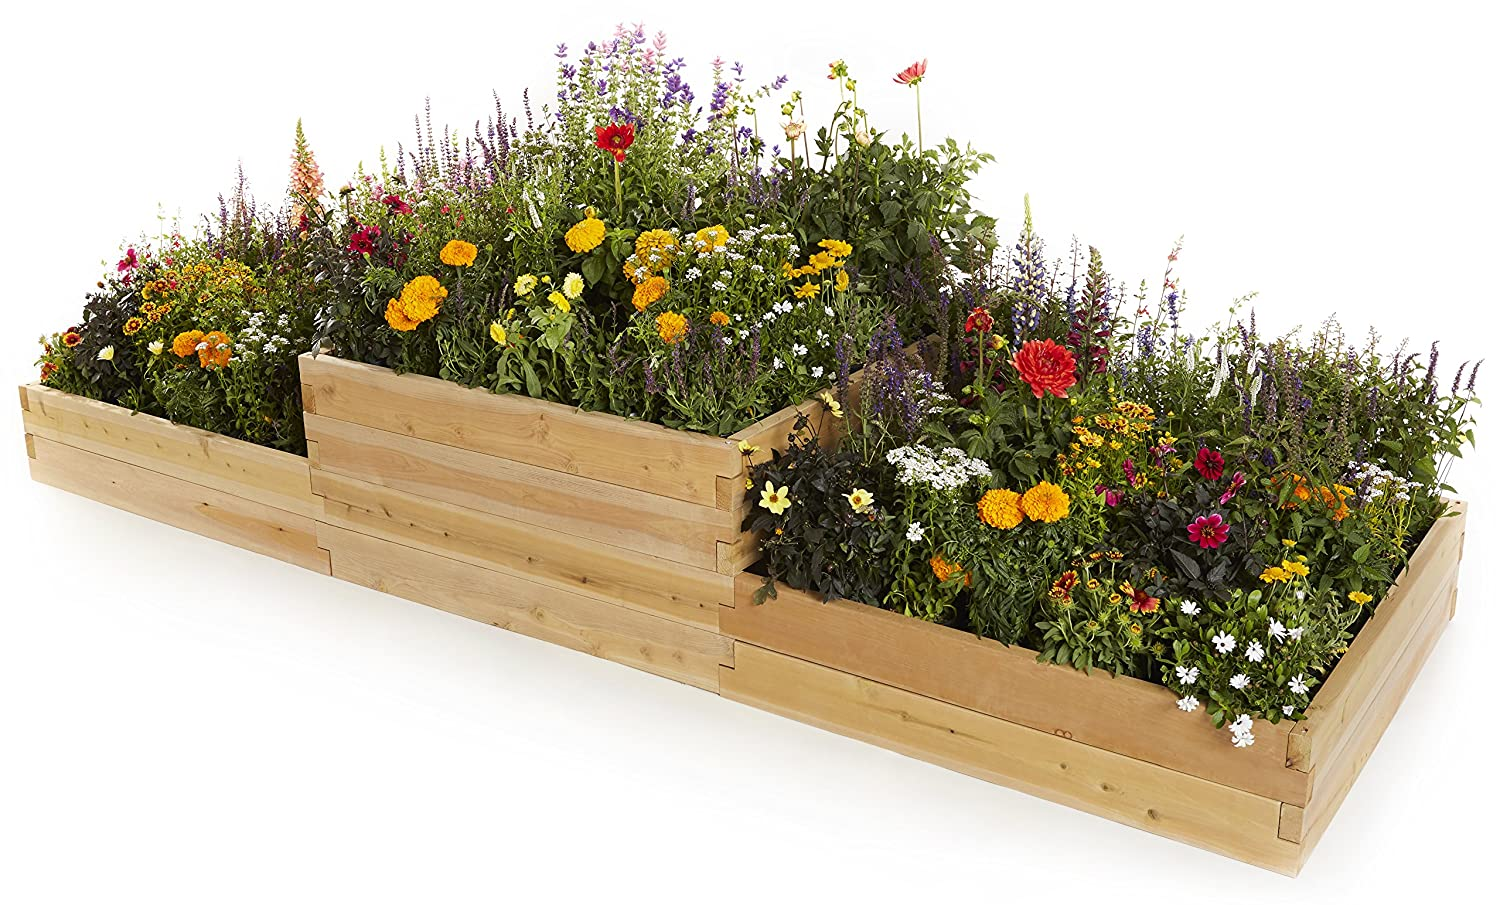 Naturalyards Raised Garden Bed Kit